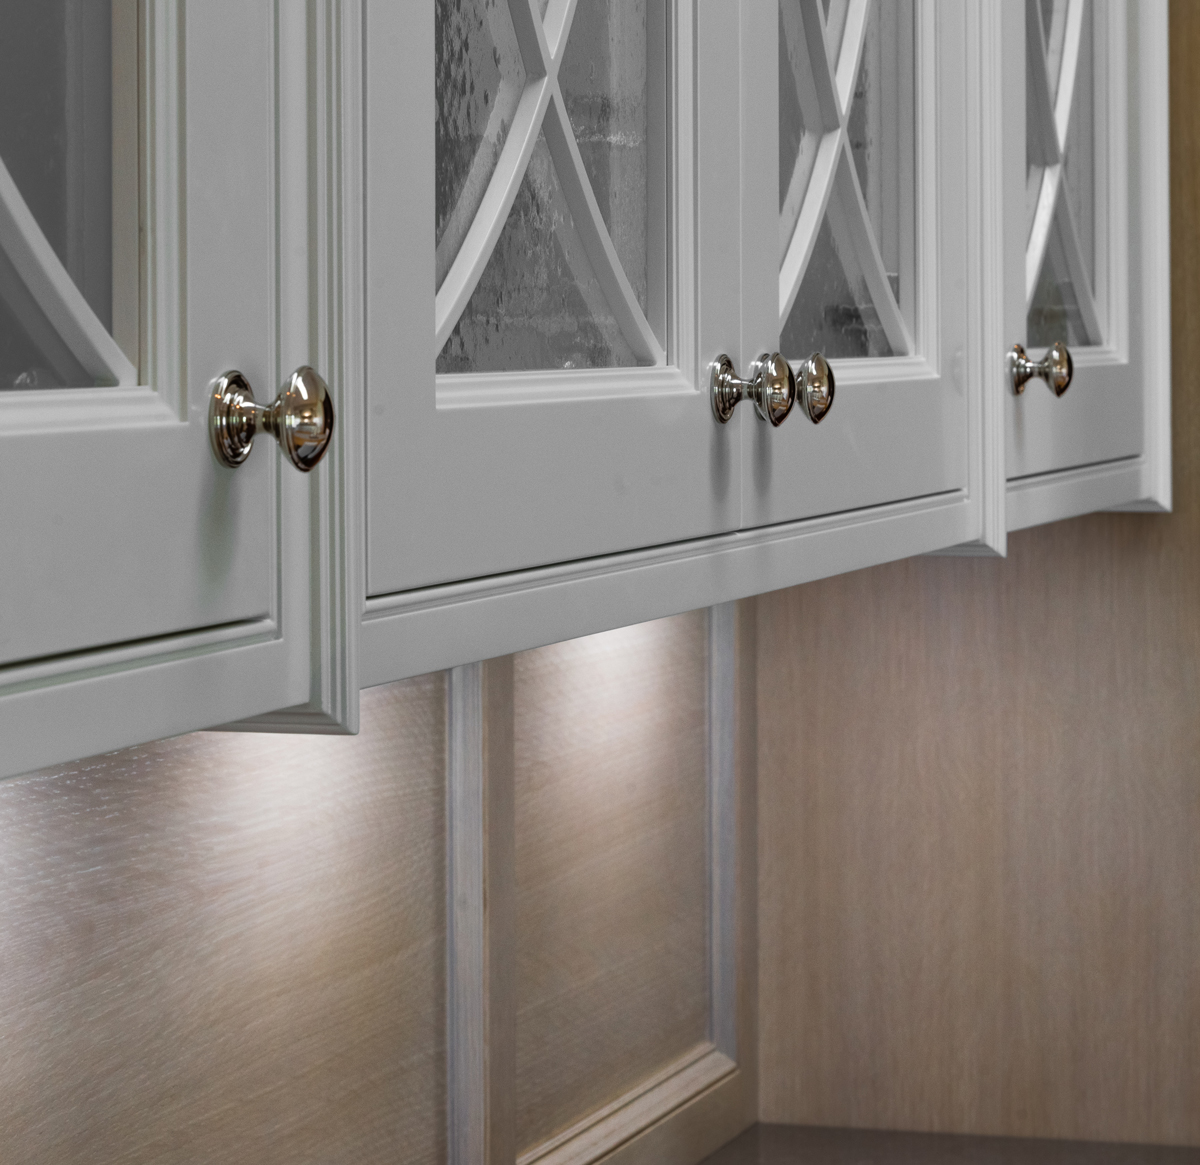 Arbor Mills Beaded Inset White Cabinetry with Glass